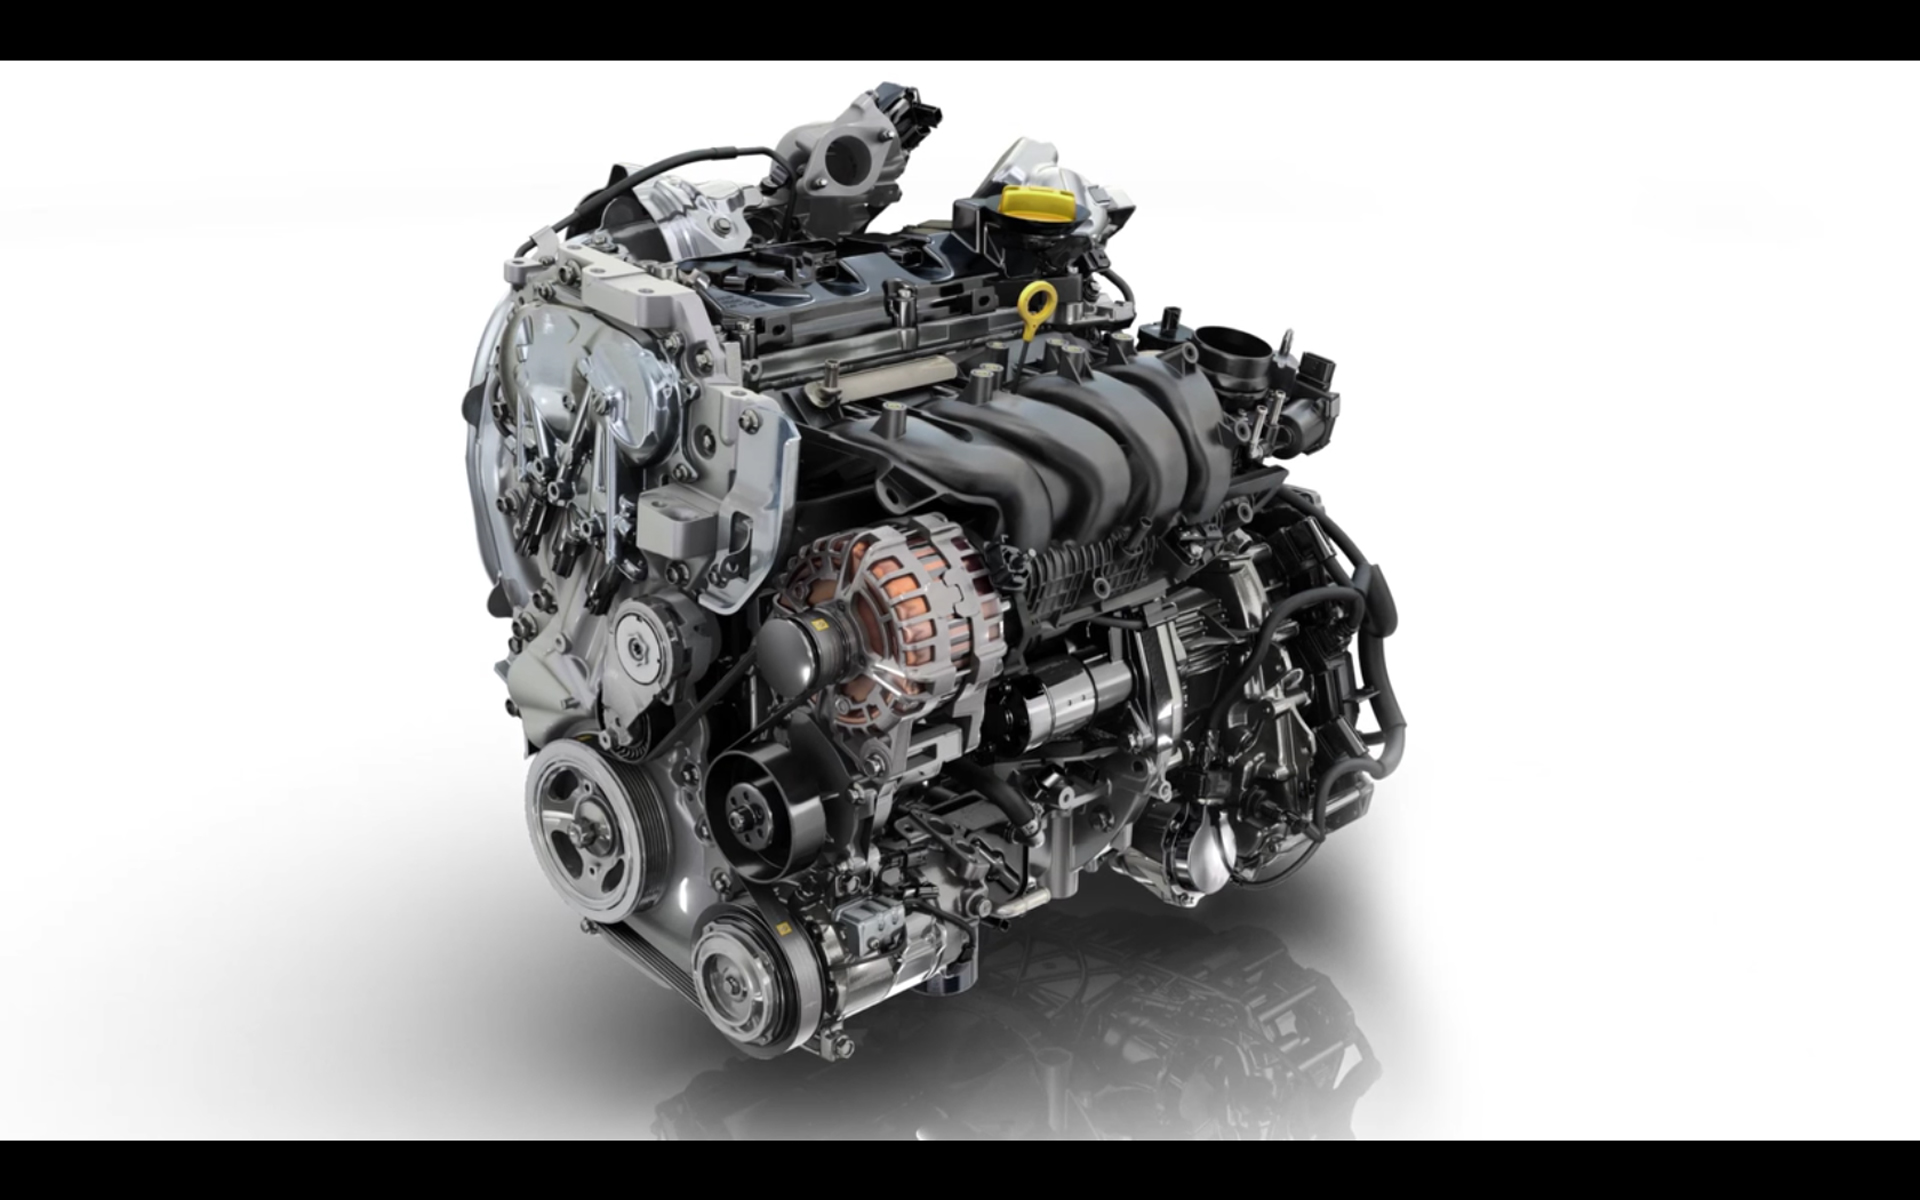 Renault - 1.8L TCe - engine / moteur - preview